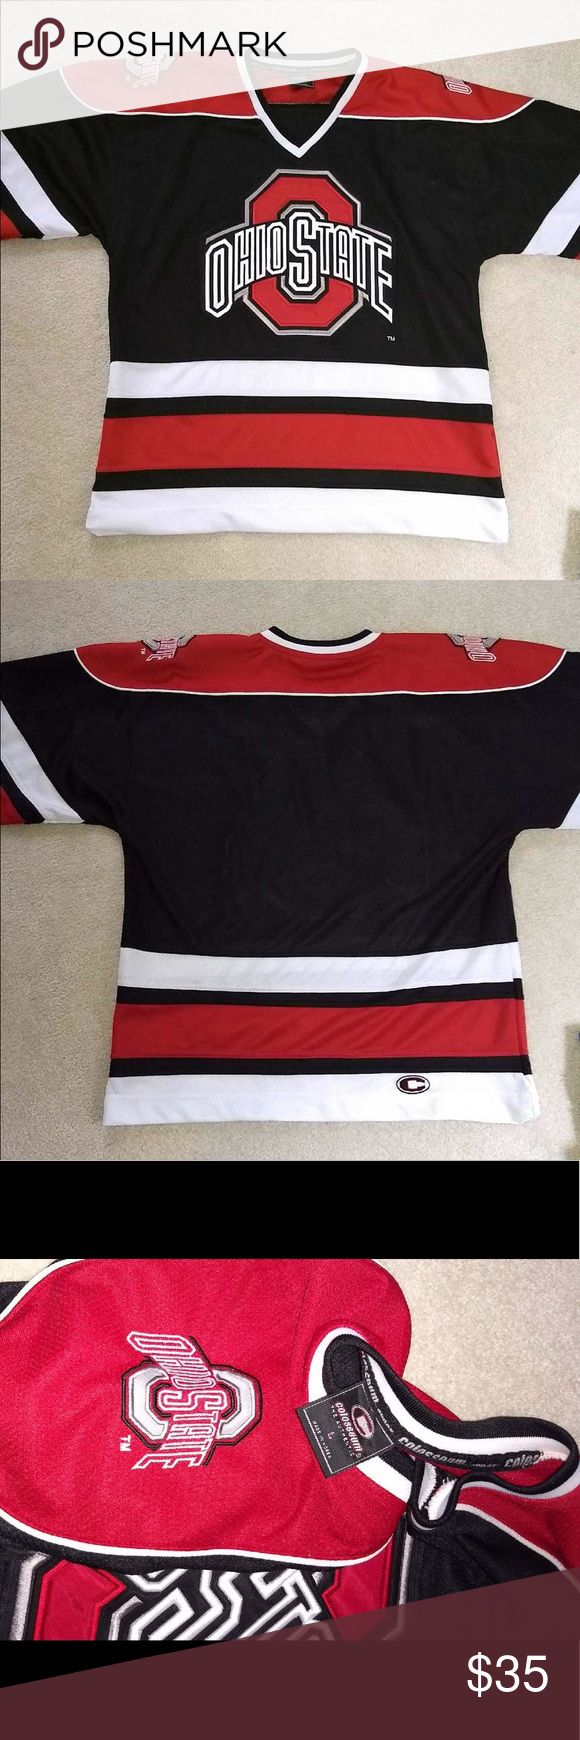 Ohio state jersey Ohio State hockey jersey collosseum brand size large. New and in good condition. Listed Nike for views Nike Tops Sweatshirts & Hoodies